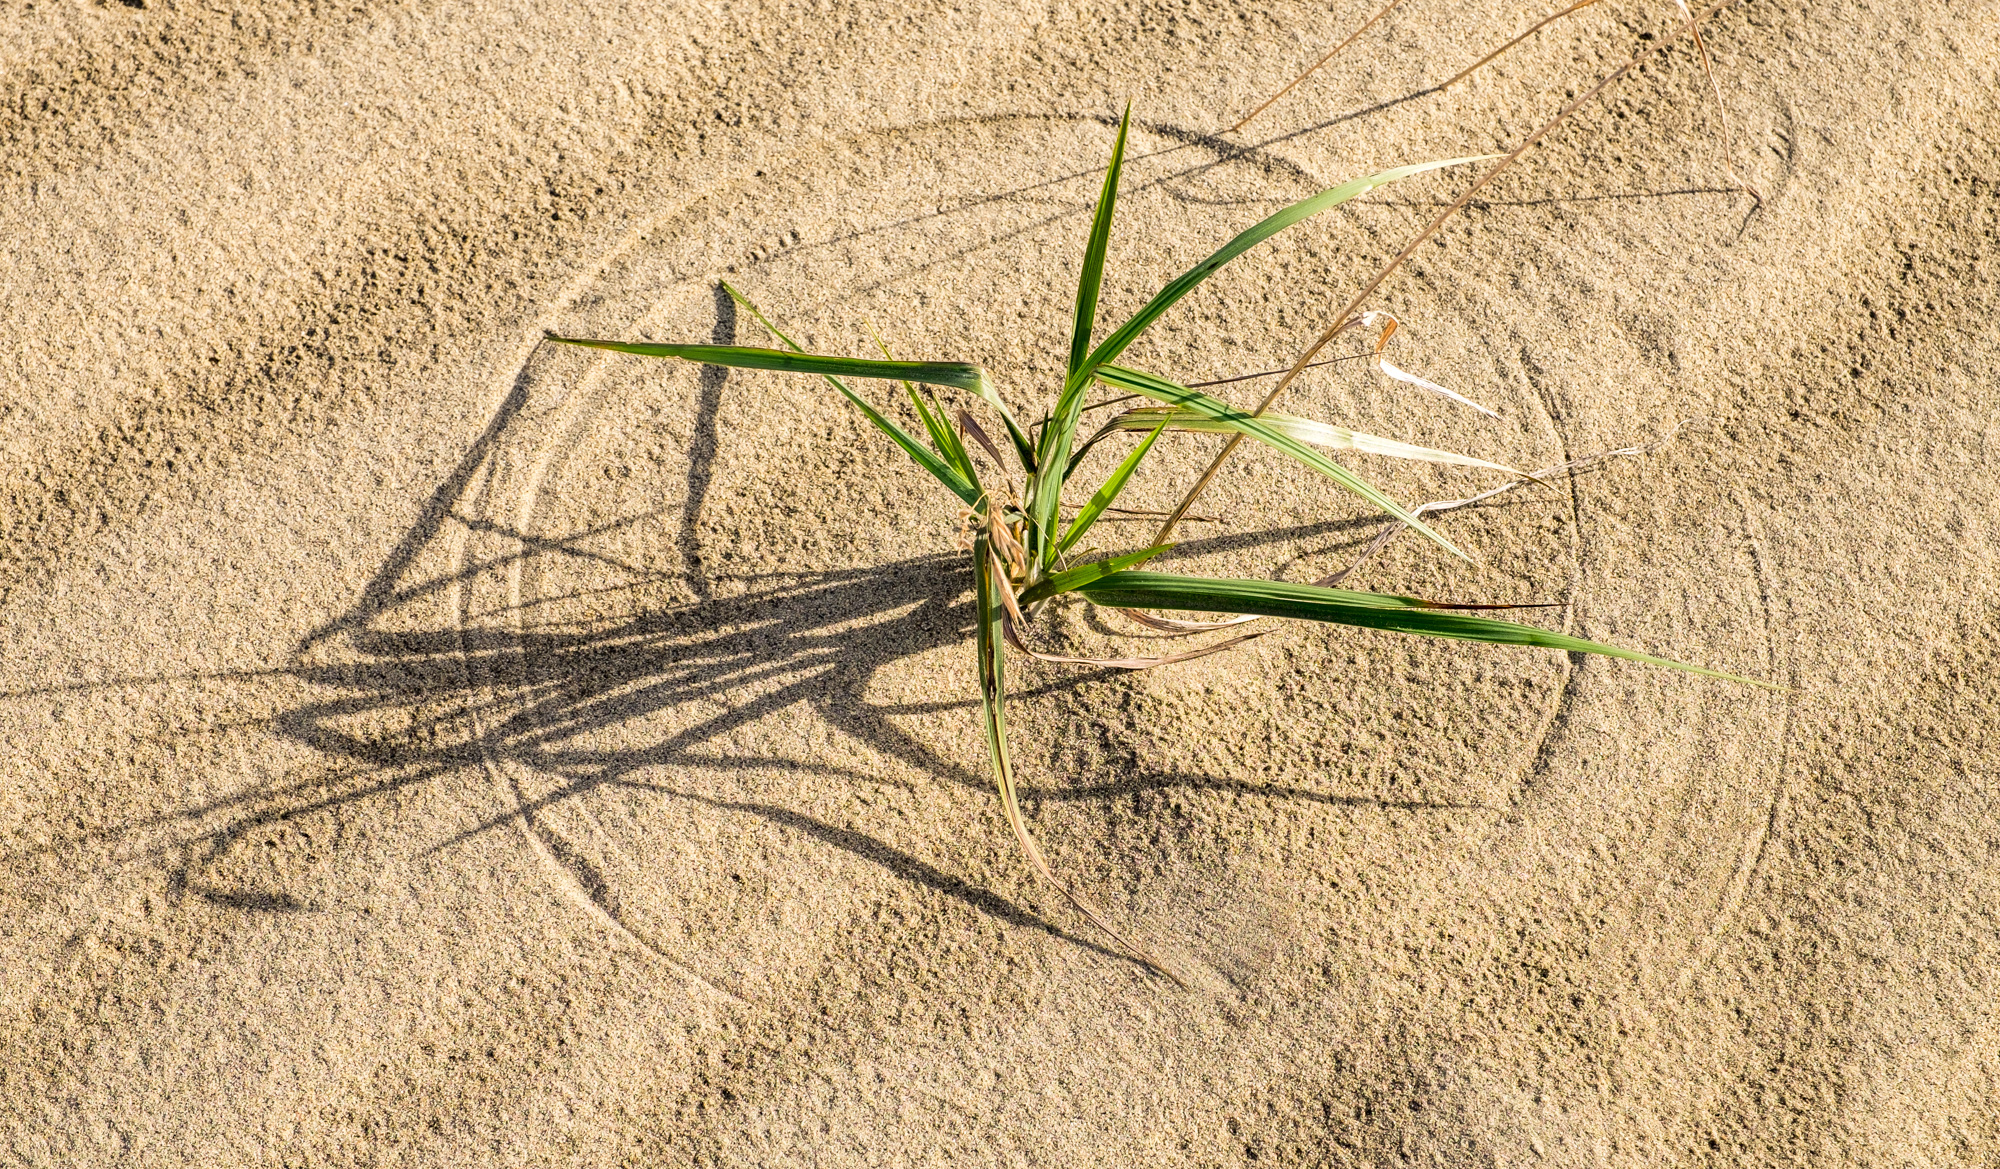 Wind blows the grasses in circles atop the dunes. So cool!